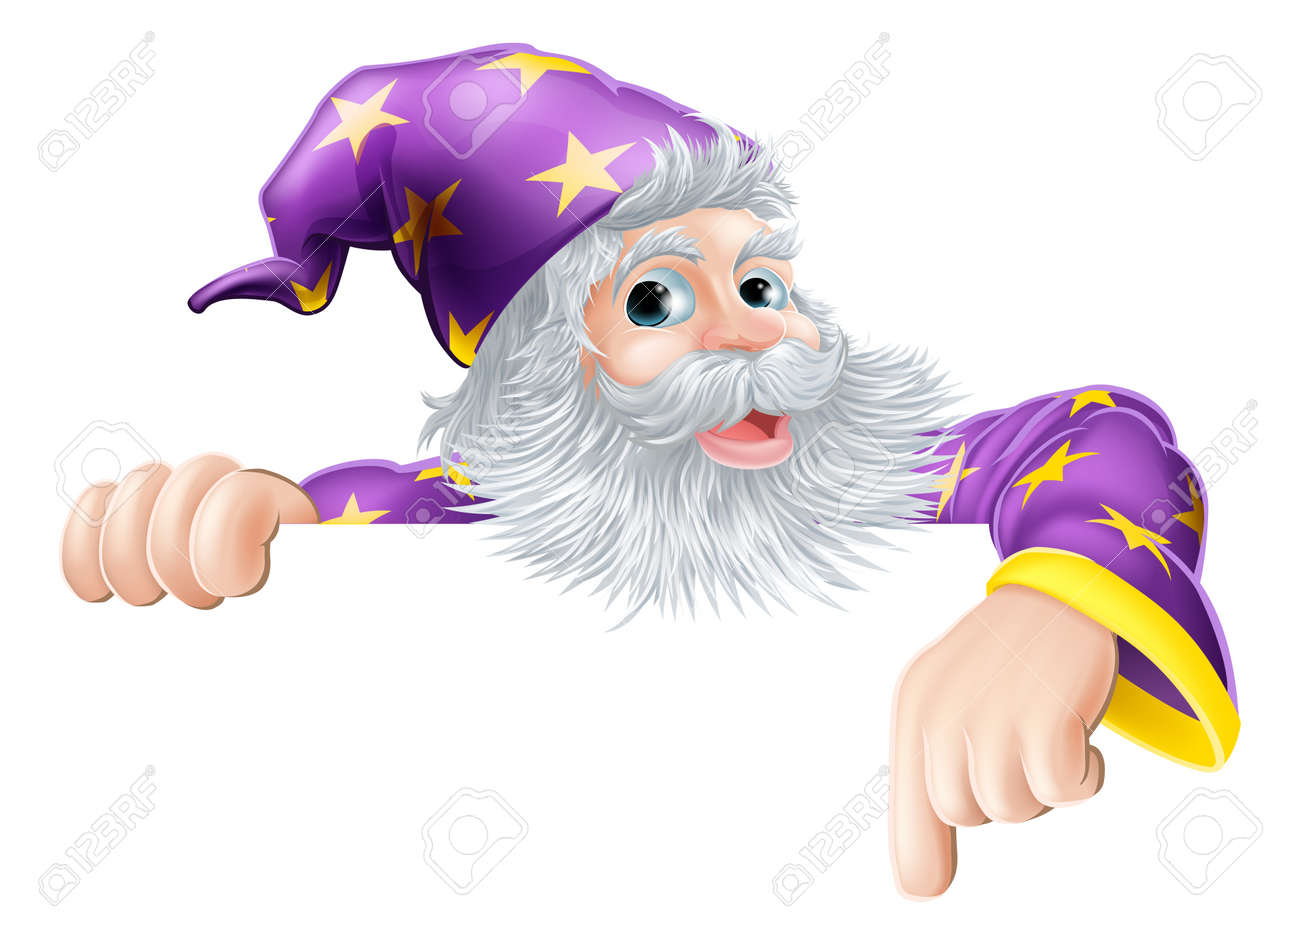 An Illustration Of A Wizard Cartoon Character Peeping Over Sign And Pointing Stock Vector